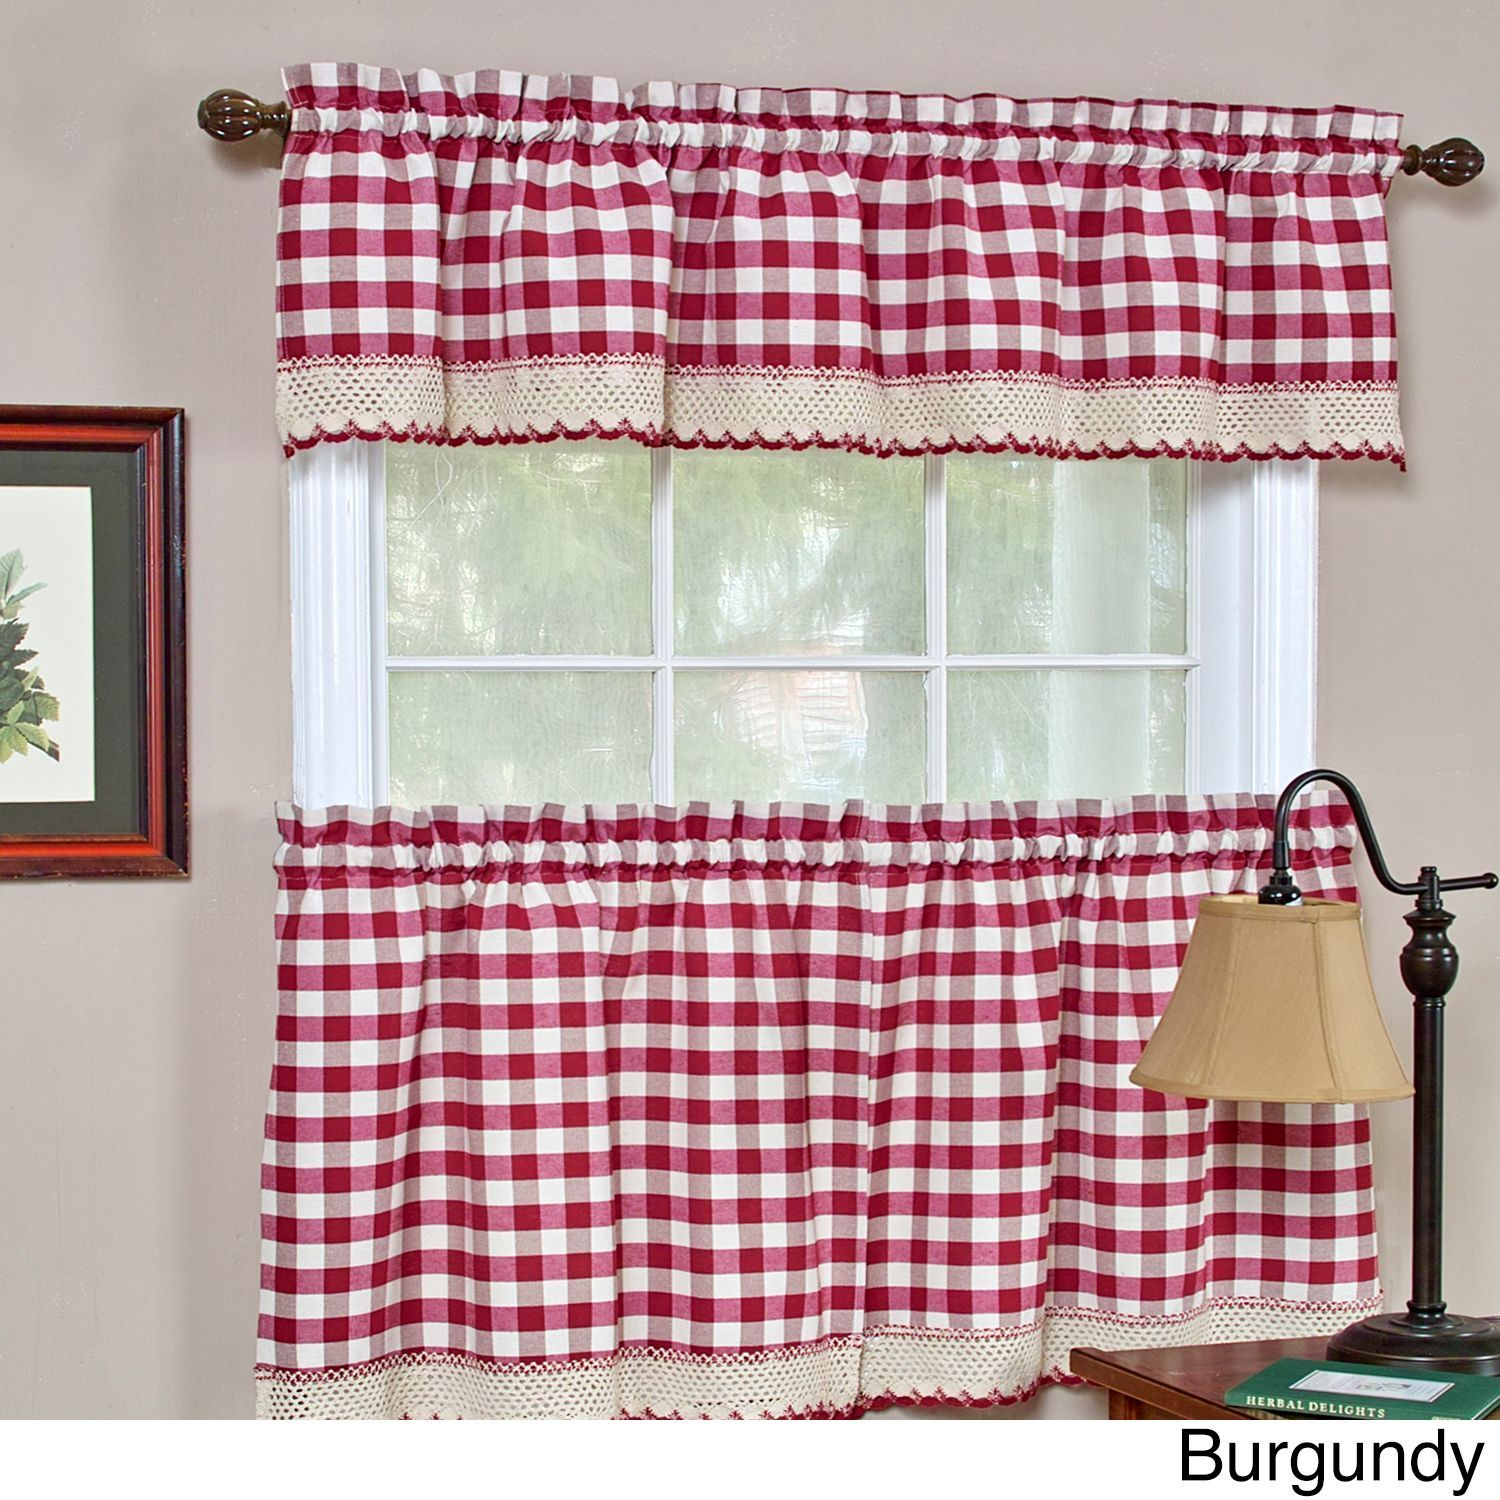 superb Pink Gingham Valance Part - 9: Achim Buffalo Checkered Valance (Burgundy), Red